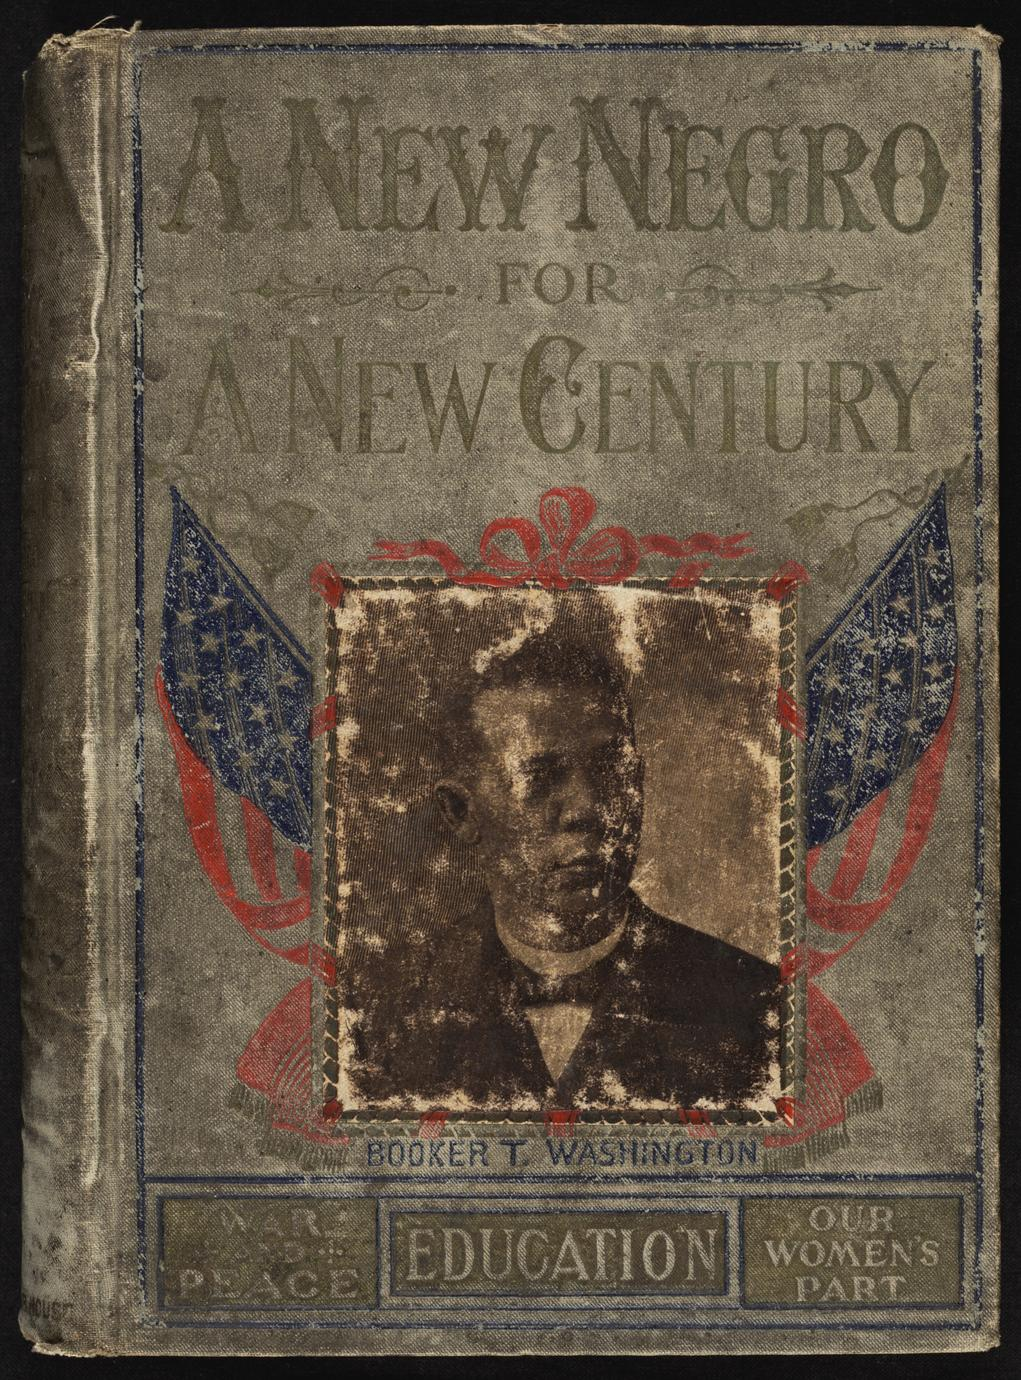 A new Negro for a new century : an accurate and up-to-date record of the upward struggles of the Negro race (1 of 2)